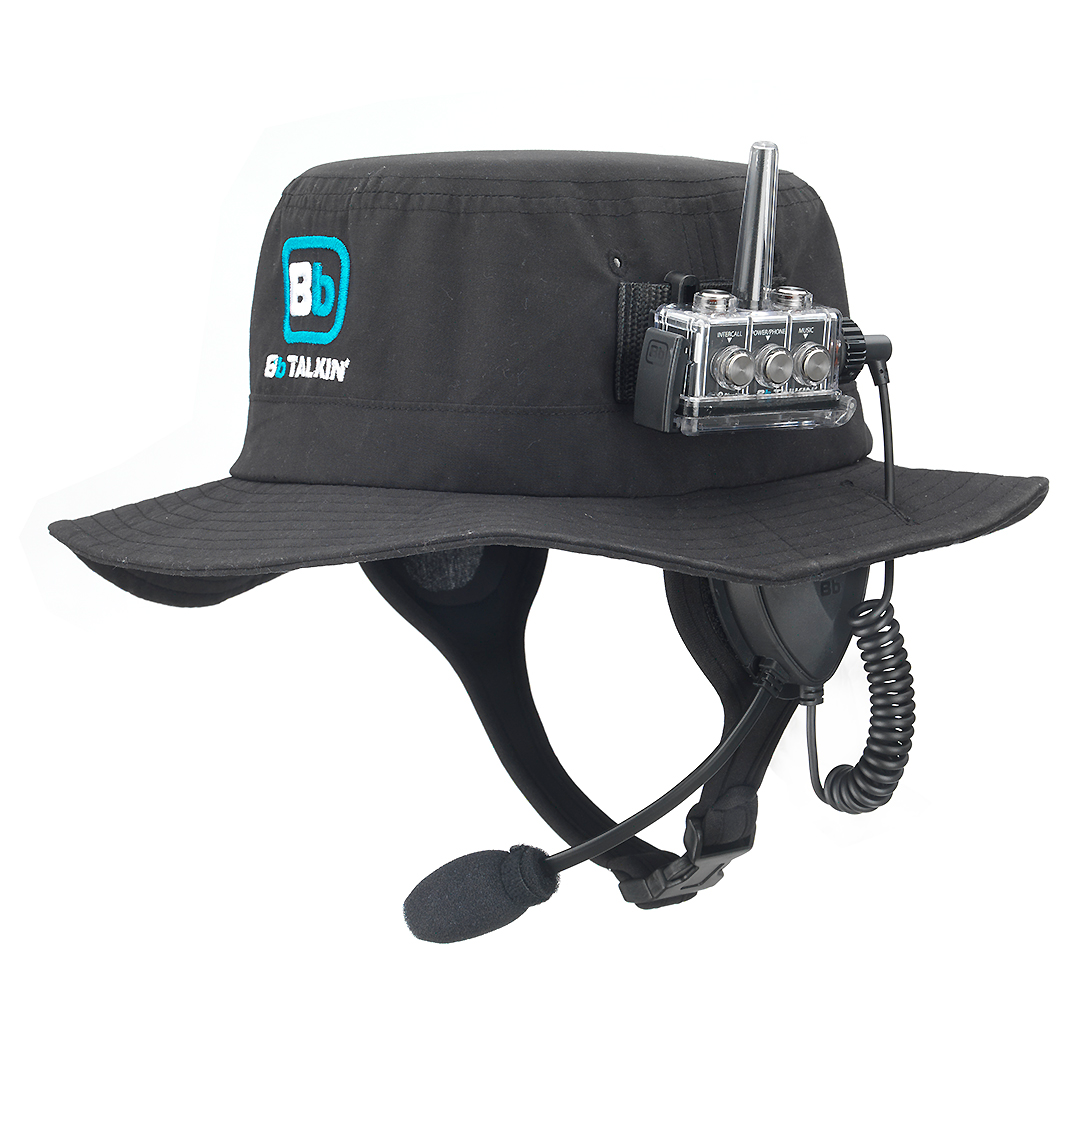 Our surf hat is 100% waterproof and provides protection from the sun